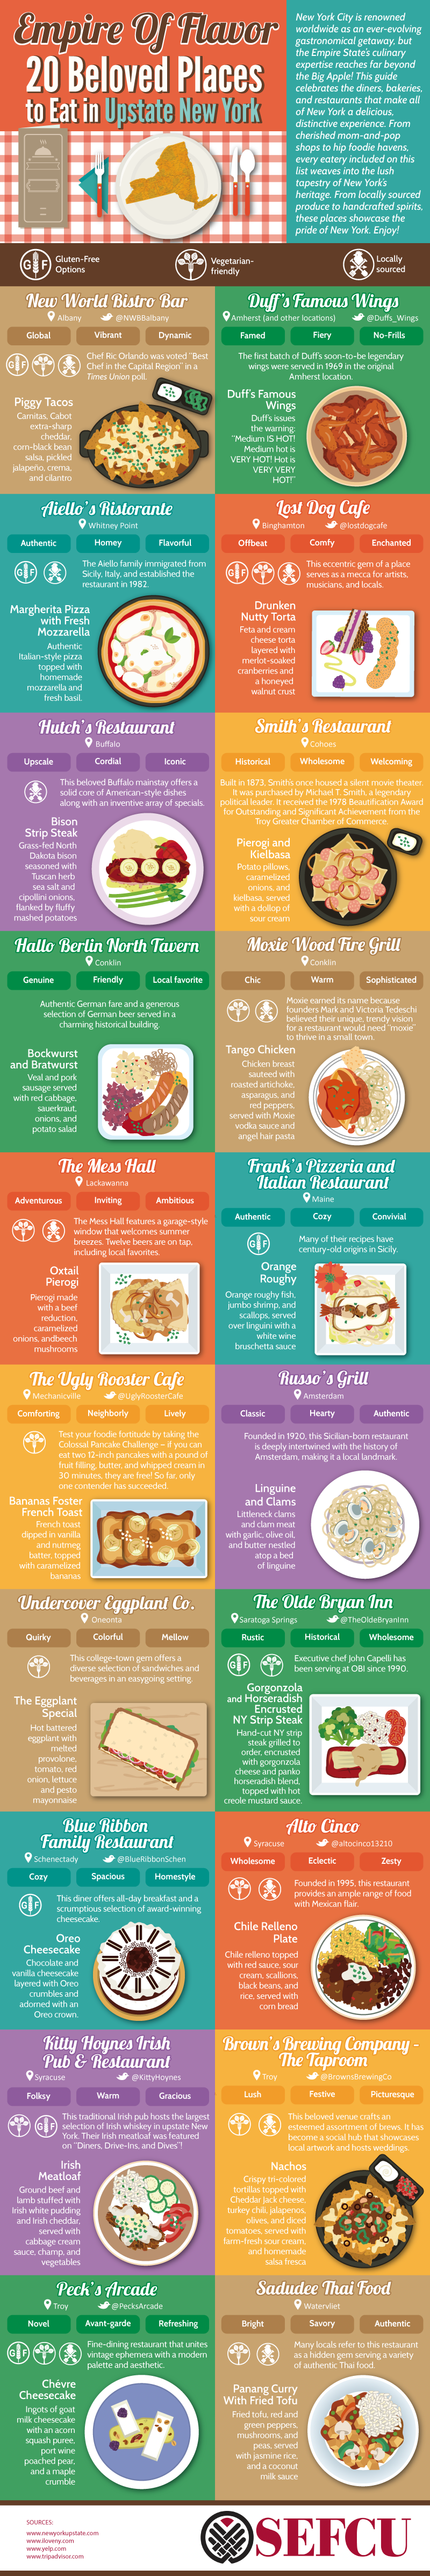 Empire of Flavor: 20 Beloved Places to Eat in Upstate New York #Infographic